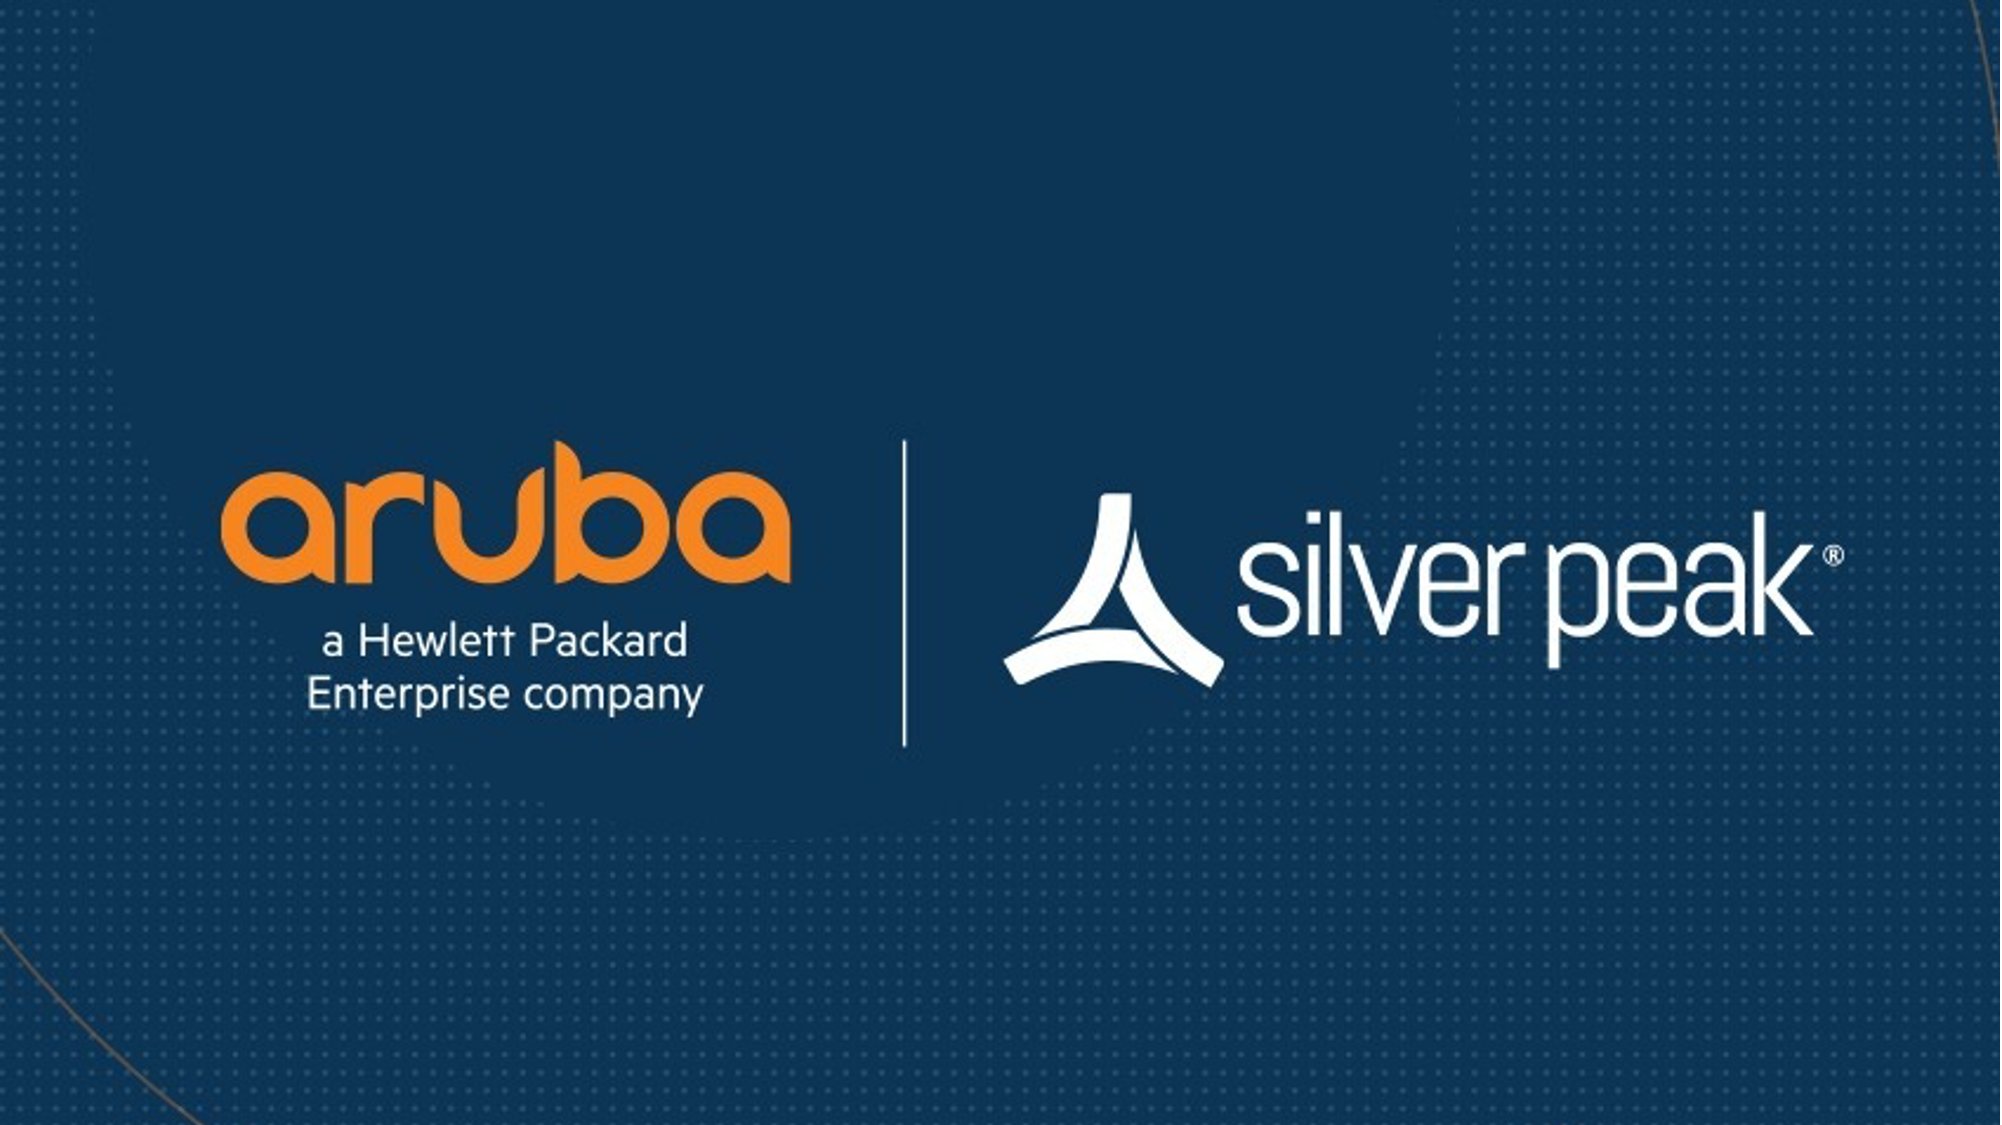 Silver Peak SD-WAN solution overview